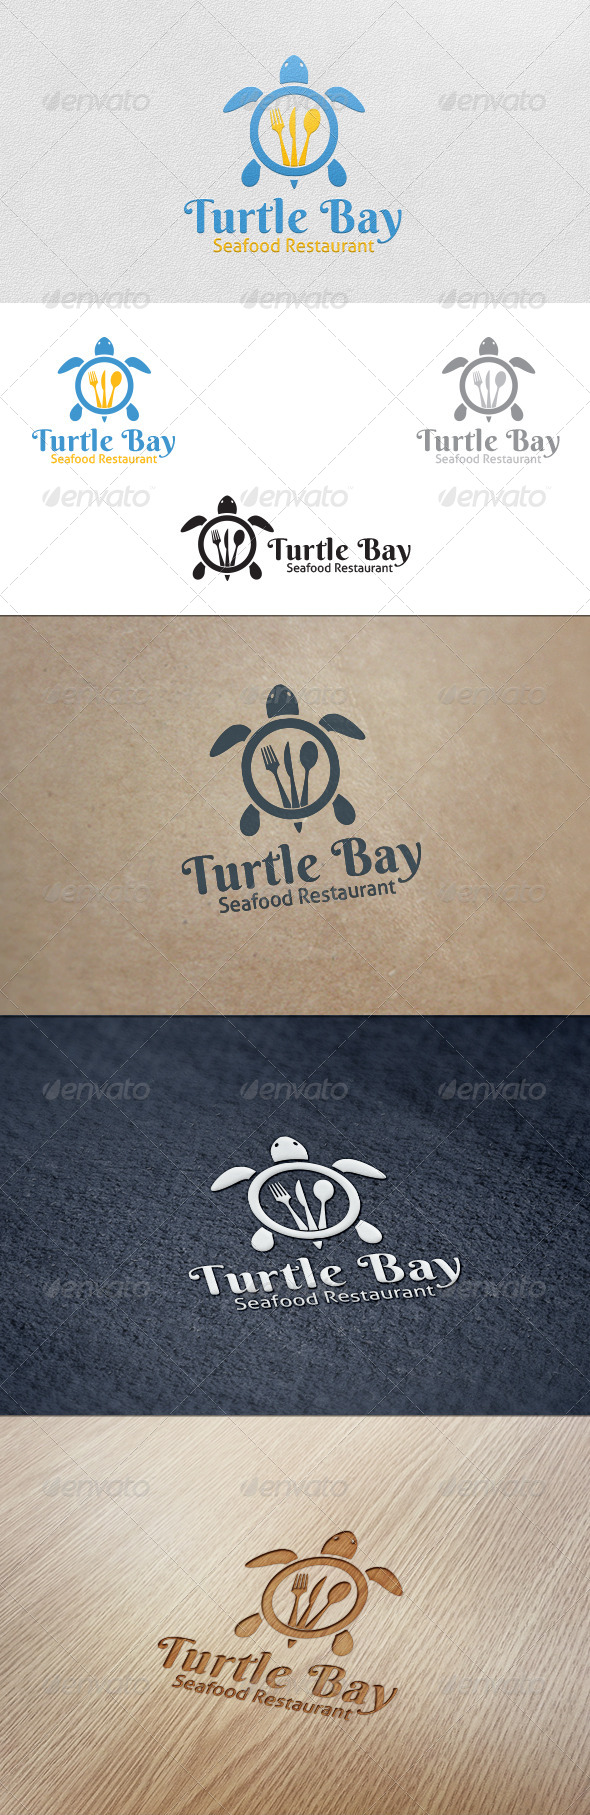 GraphicRiver Turtle Bay Restaurant Logo Template 5597715